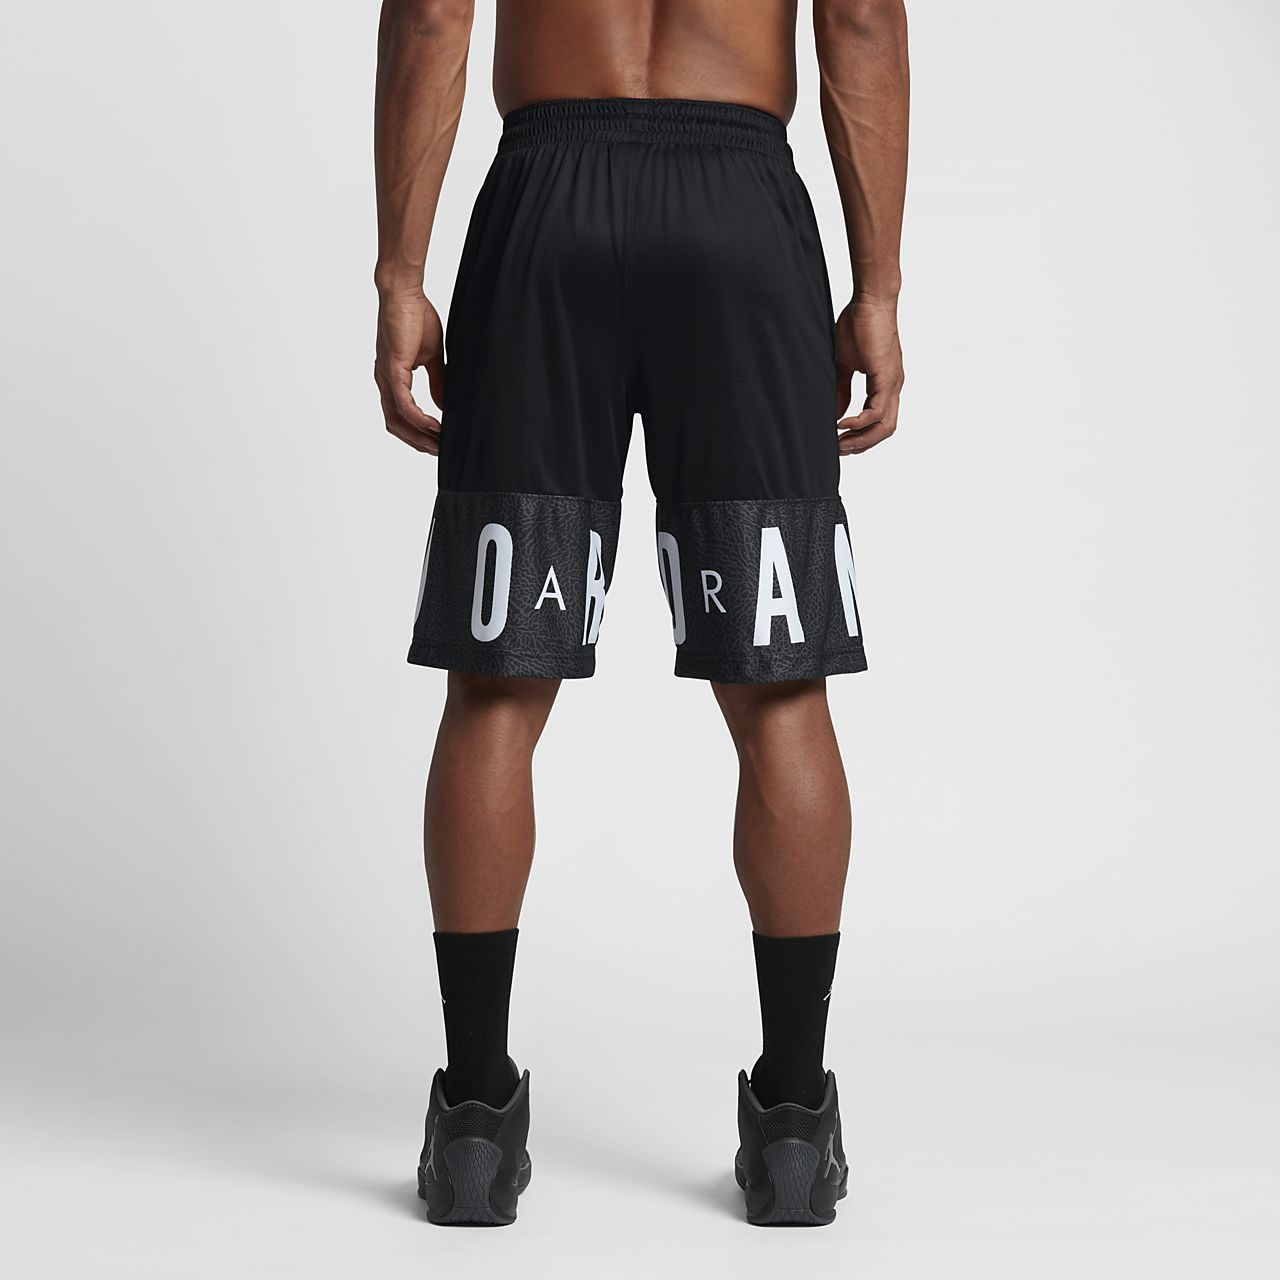 Air Jordan Blockout Men's Basketball Shorts